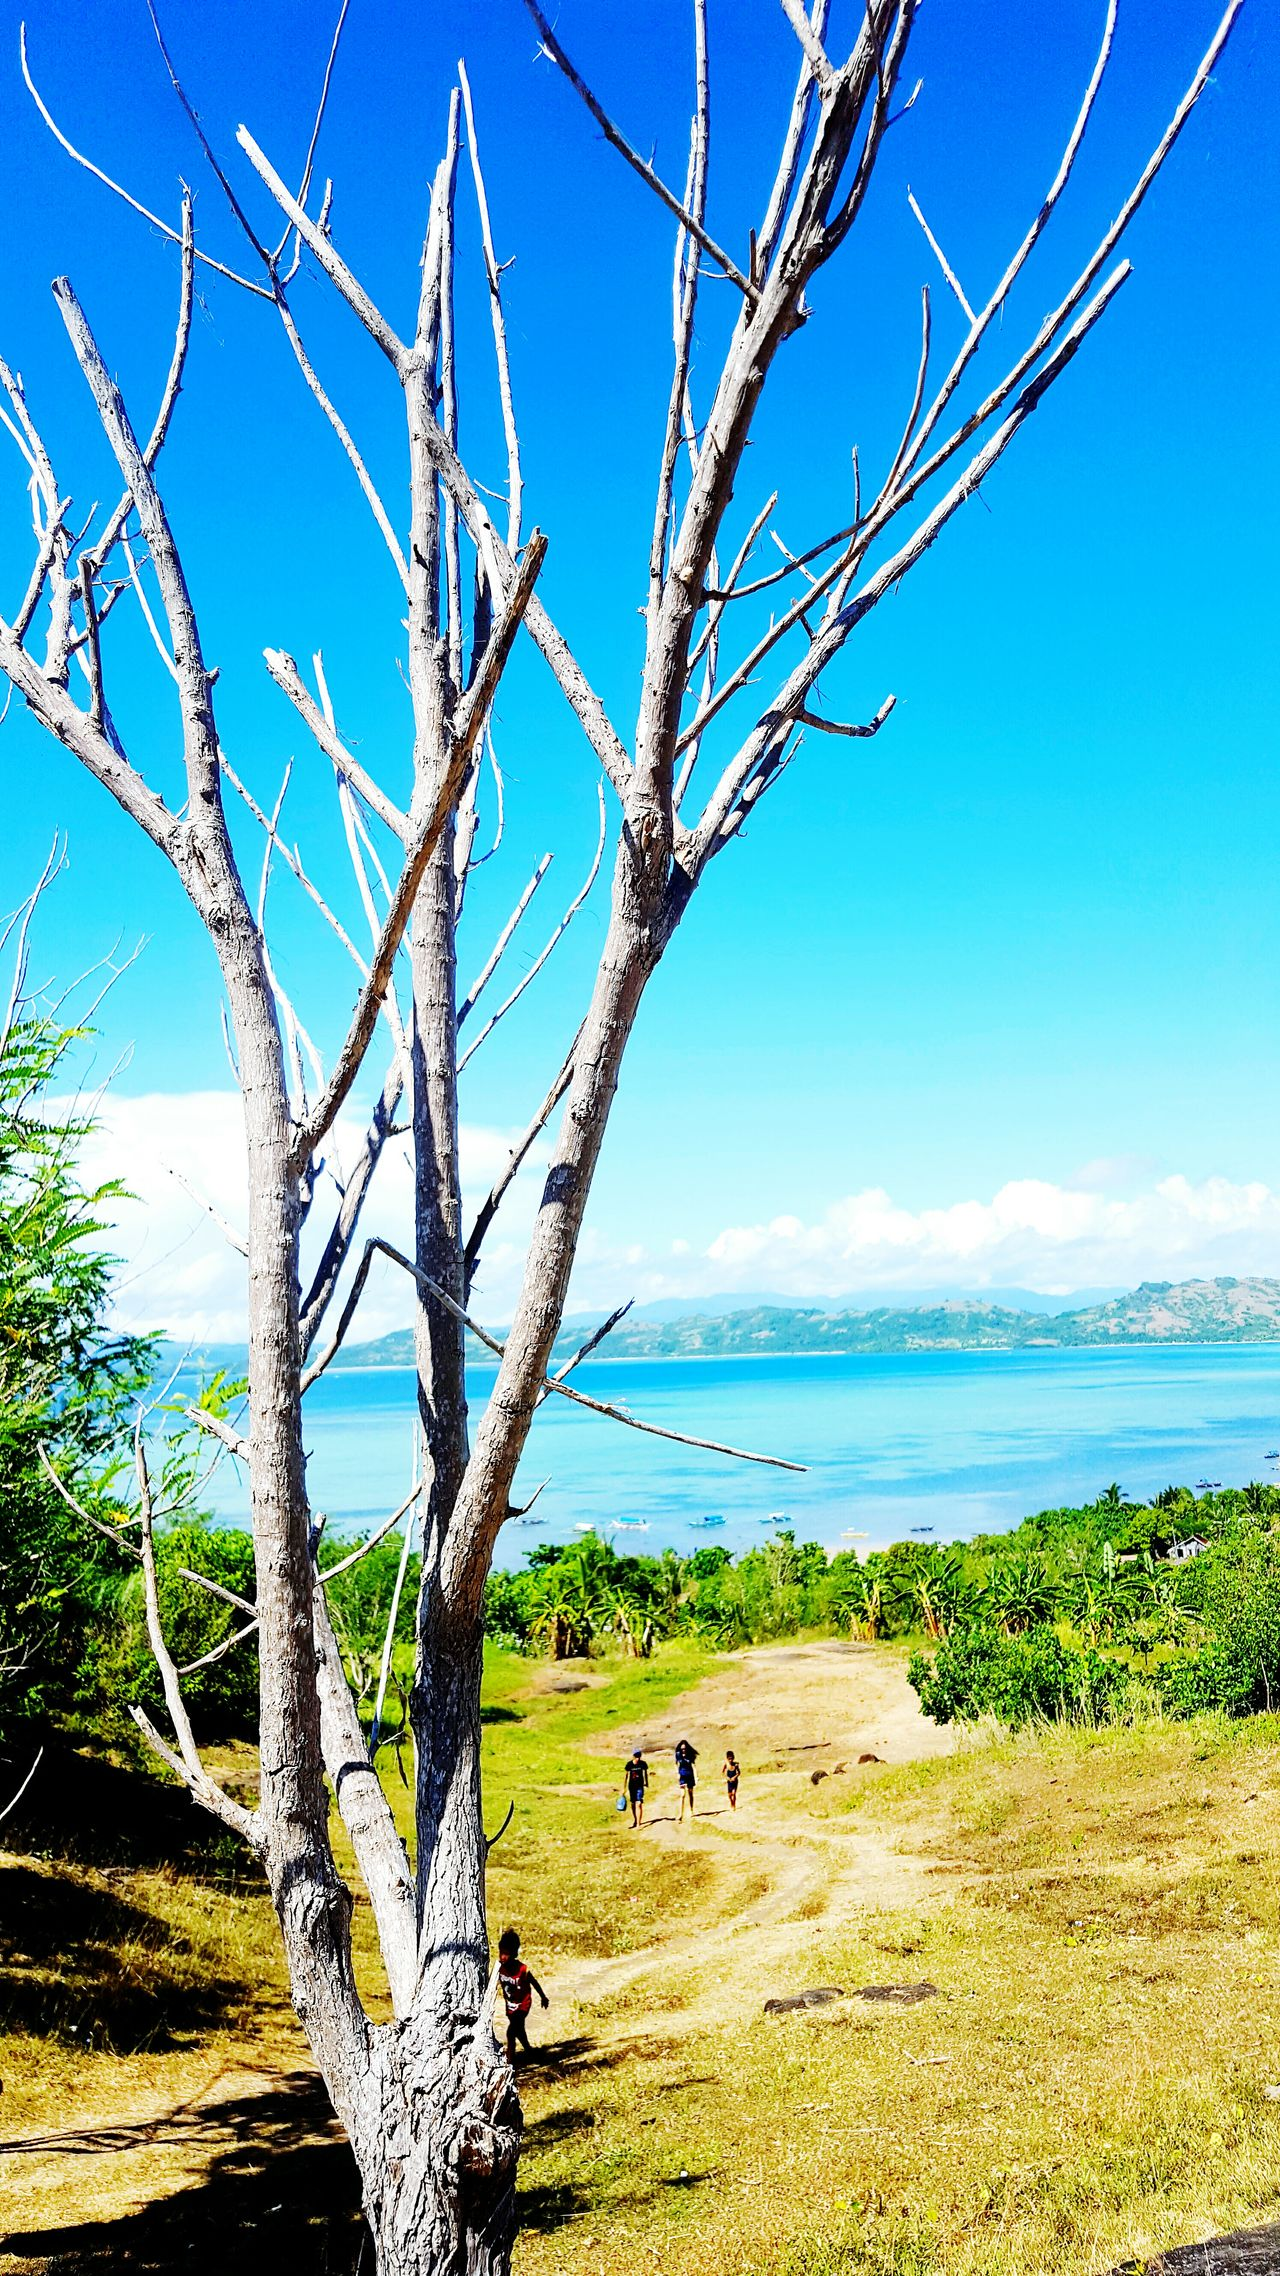 Sea Tree Nature Blue Sky Beach Horizon Over Water Beauty In Nature Water Outdoors Scenics Landscape Day Flower Freshness Travel Destinations Photography In Motion Leaf Photographer In The Shot Nature Photography Photooftheday EyeEm Best Shots Photography Photographer Naturelovers